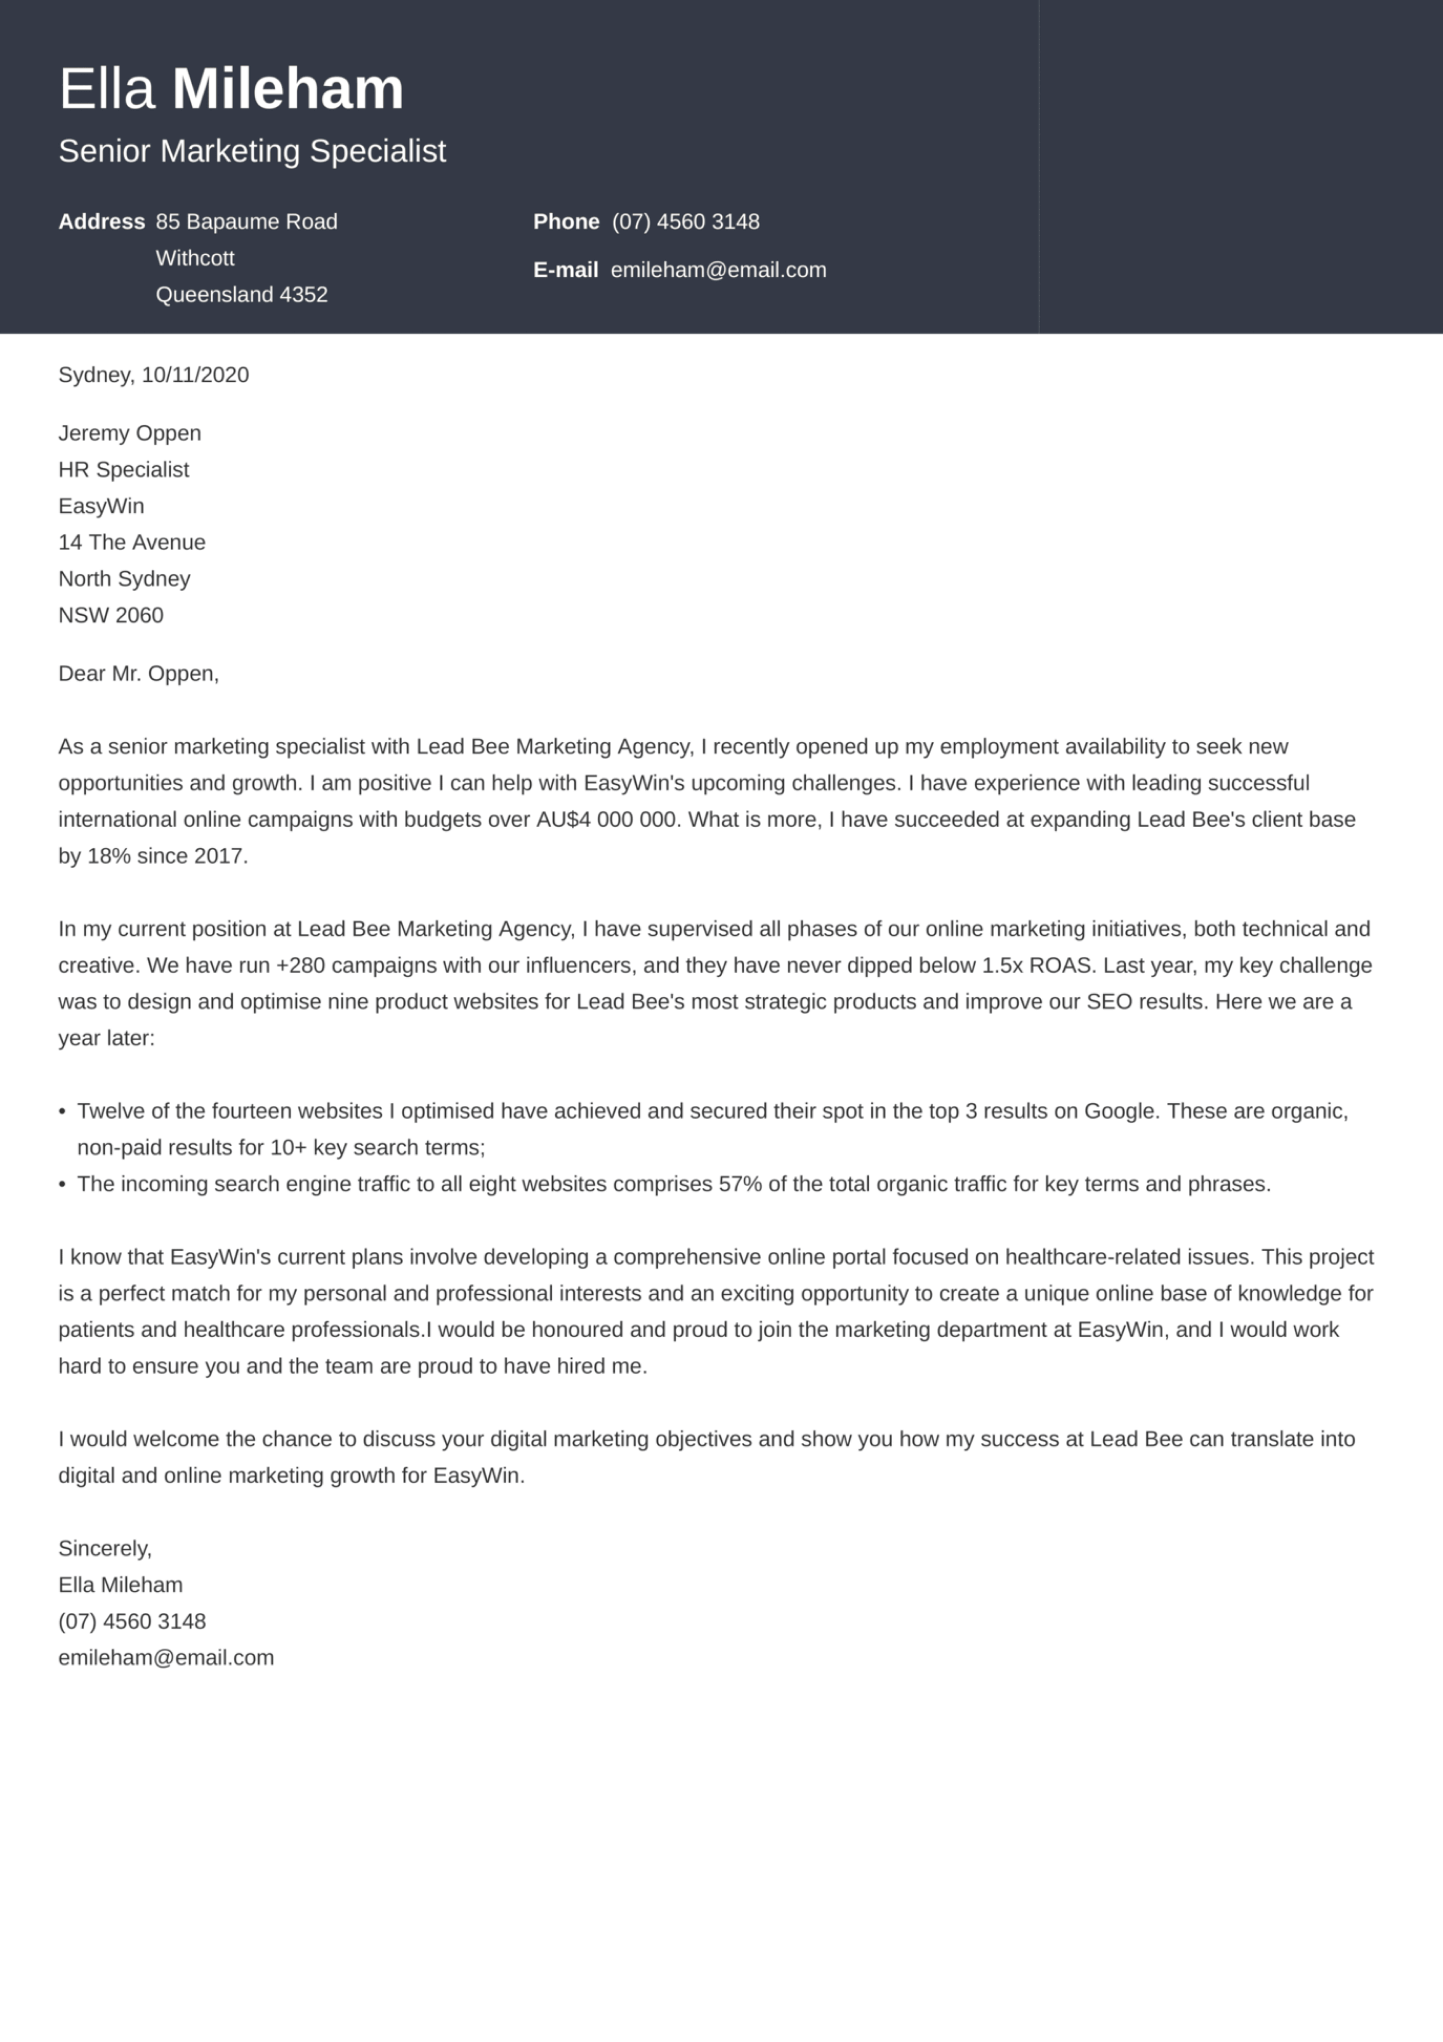 Influx cover letter template